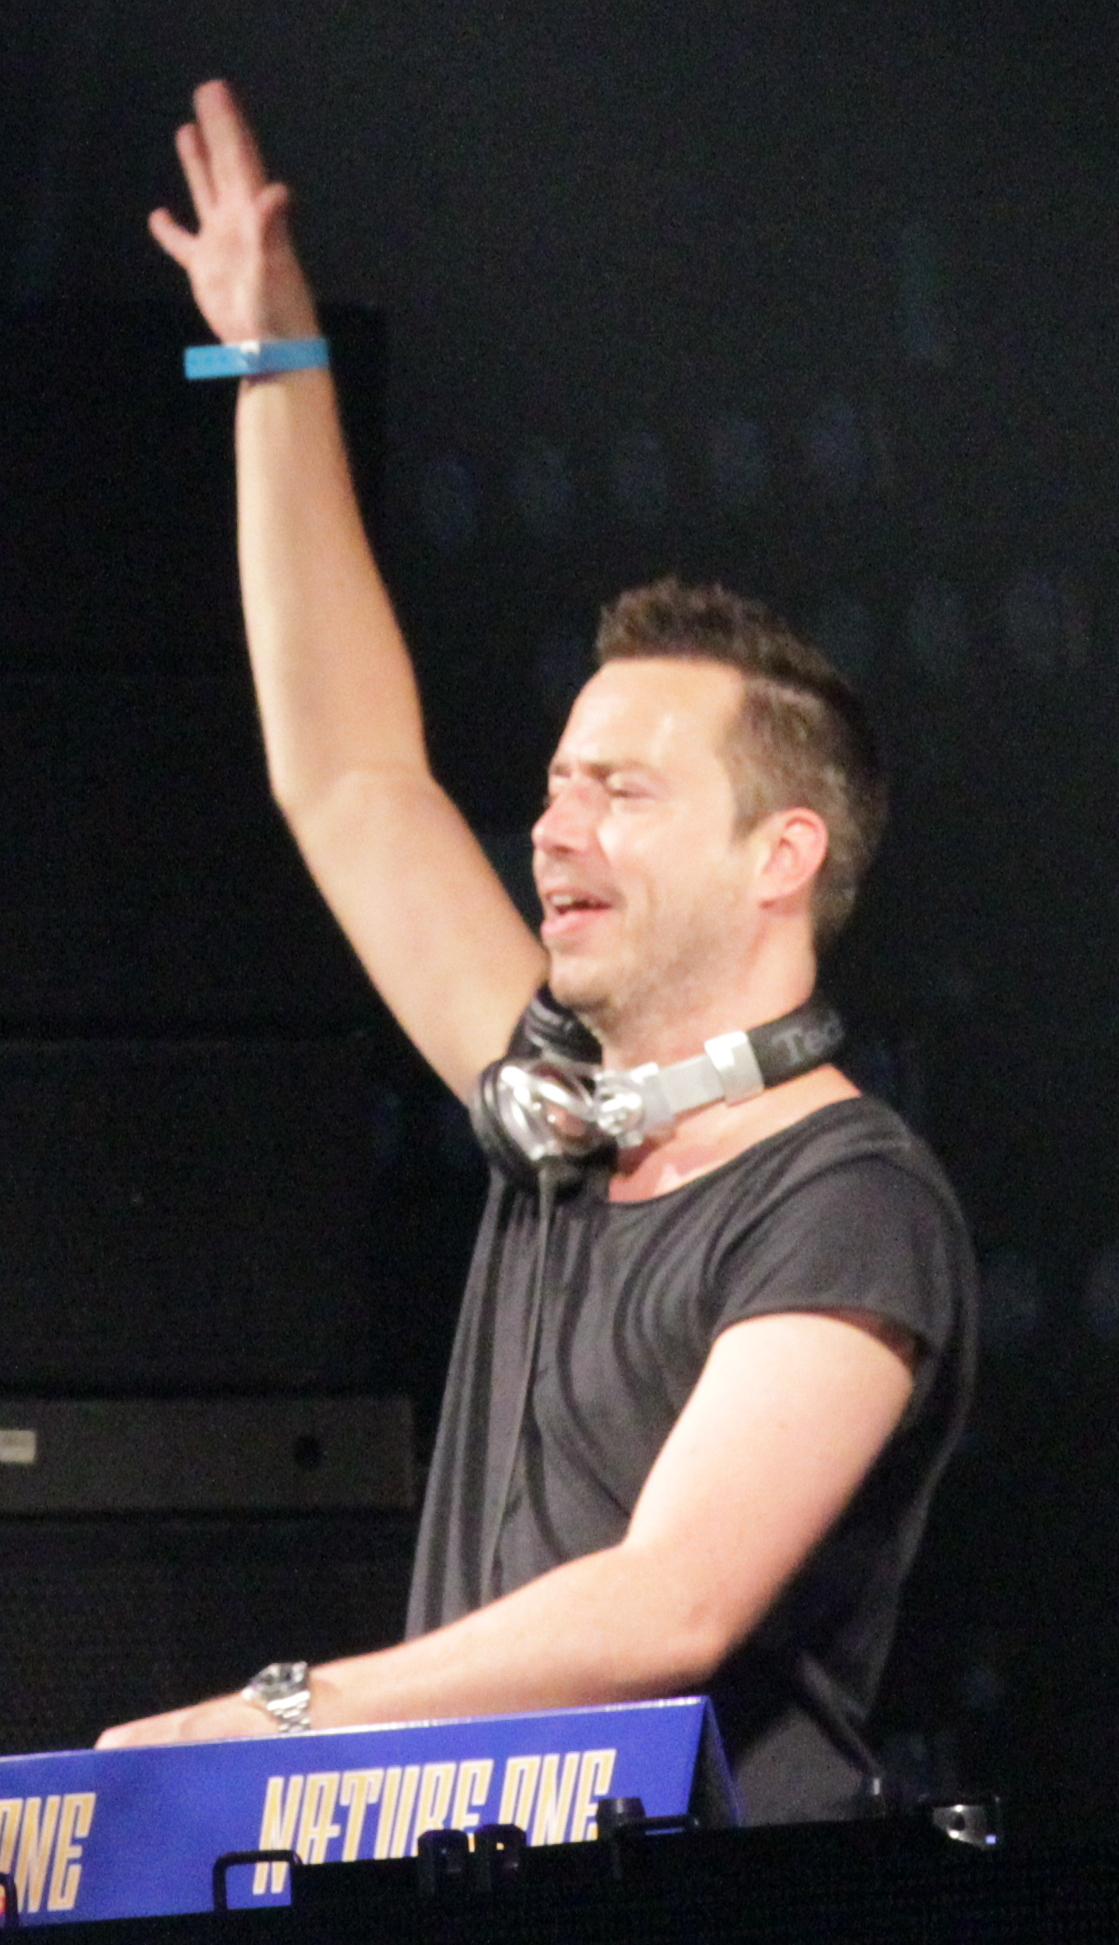 The 39-year old son of father (?) and mother(?) Sander Van Doorn in 2018 photo. Sander Van Doorn earned a  million dollar salary - leaving the net worth at 10 million in 2018